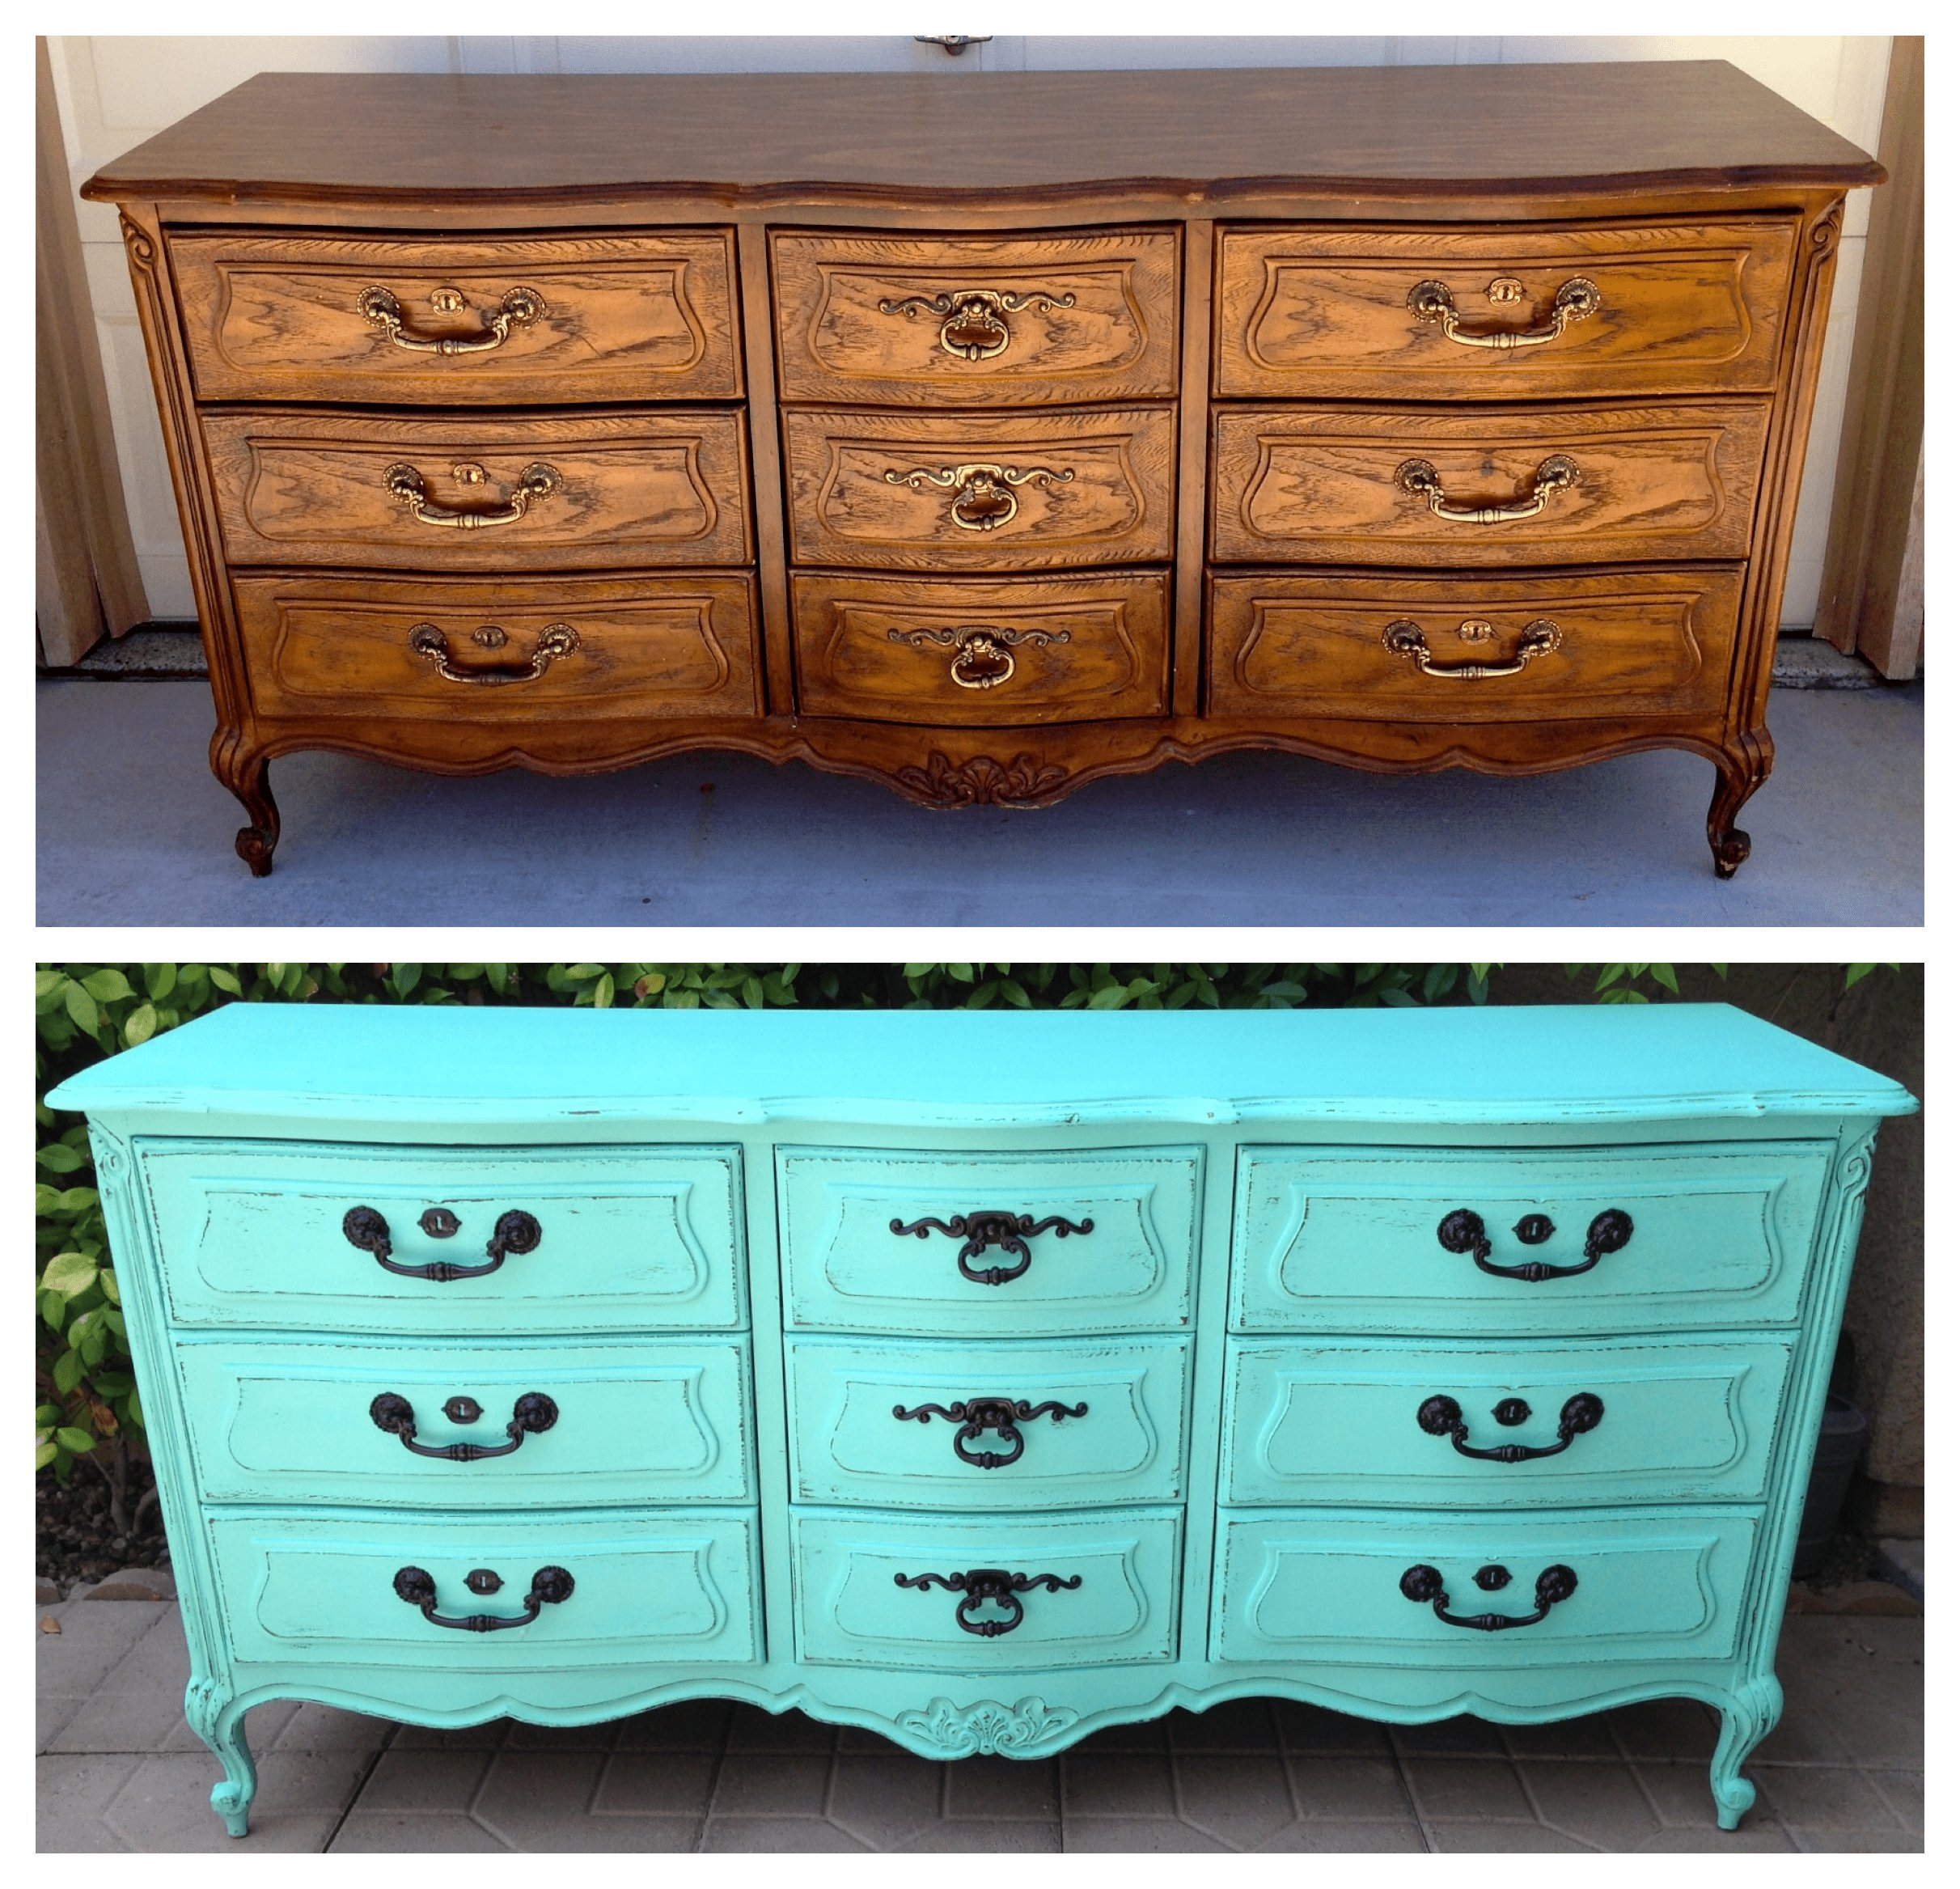 Best Refinish Bedroom Furniture How To A Dresser Without With Pictures